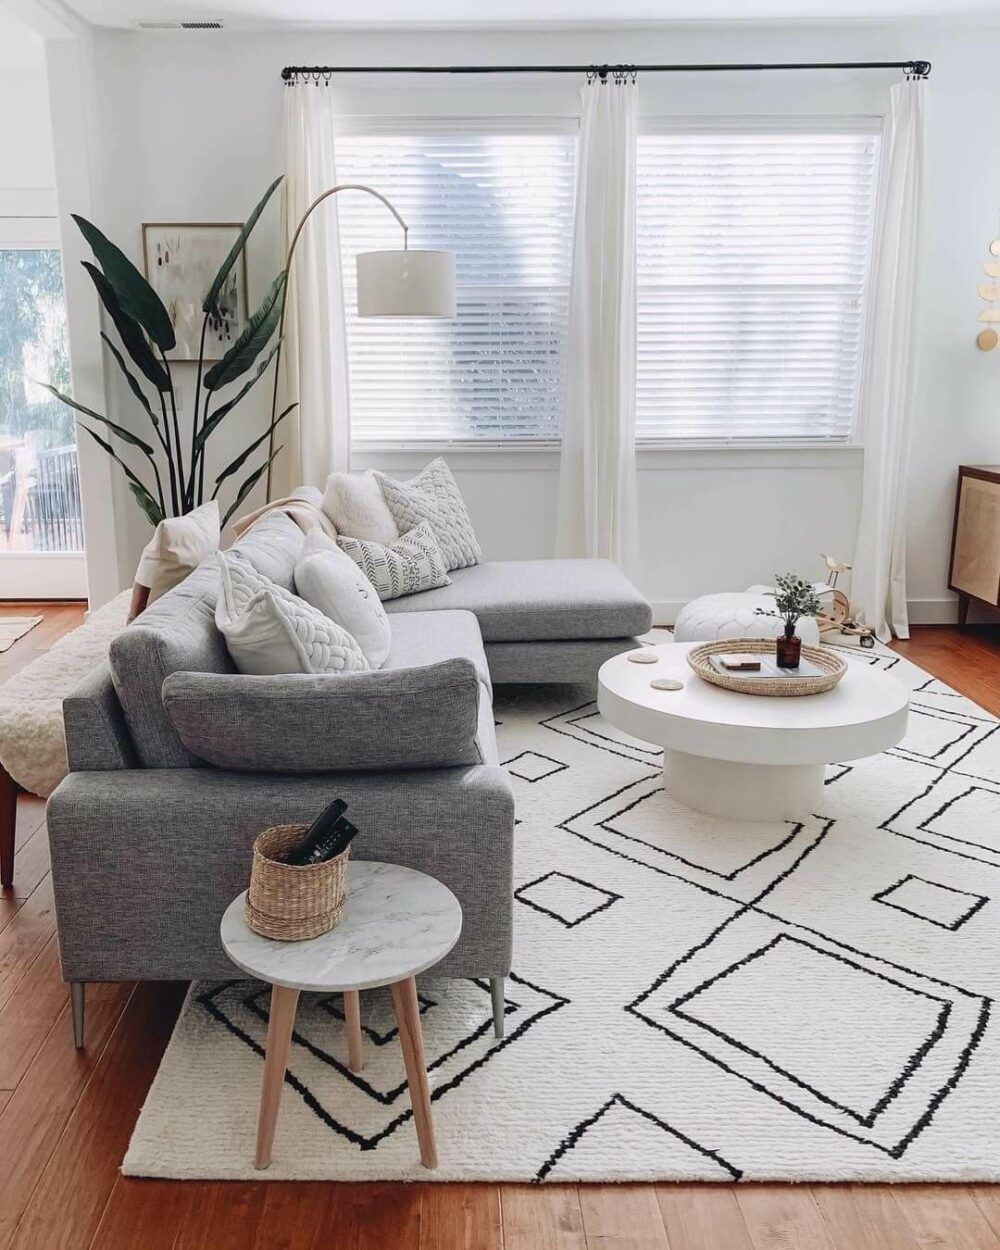 21 Amazing Living Room Rug Ideas To Make The Room Livelier Rugs